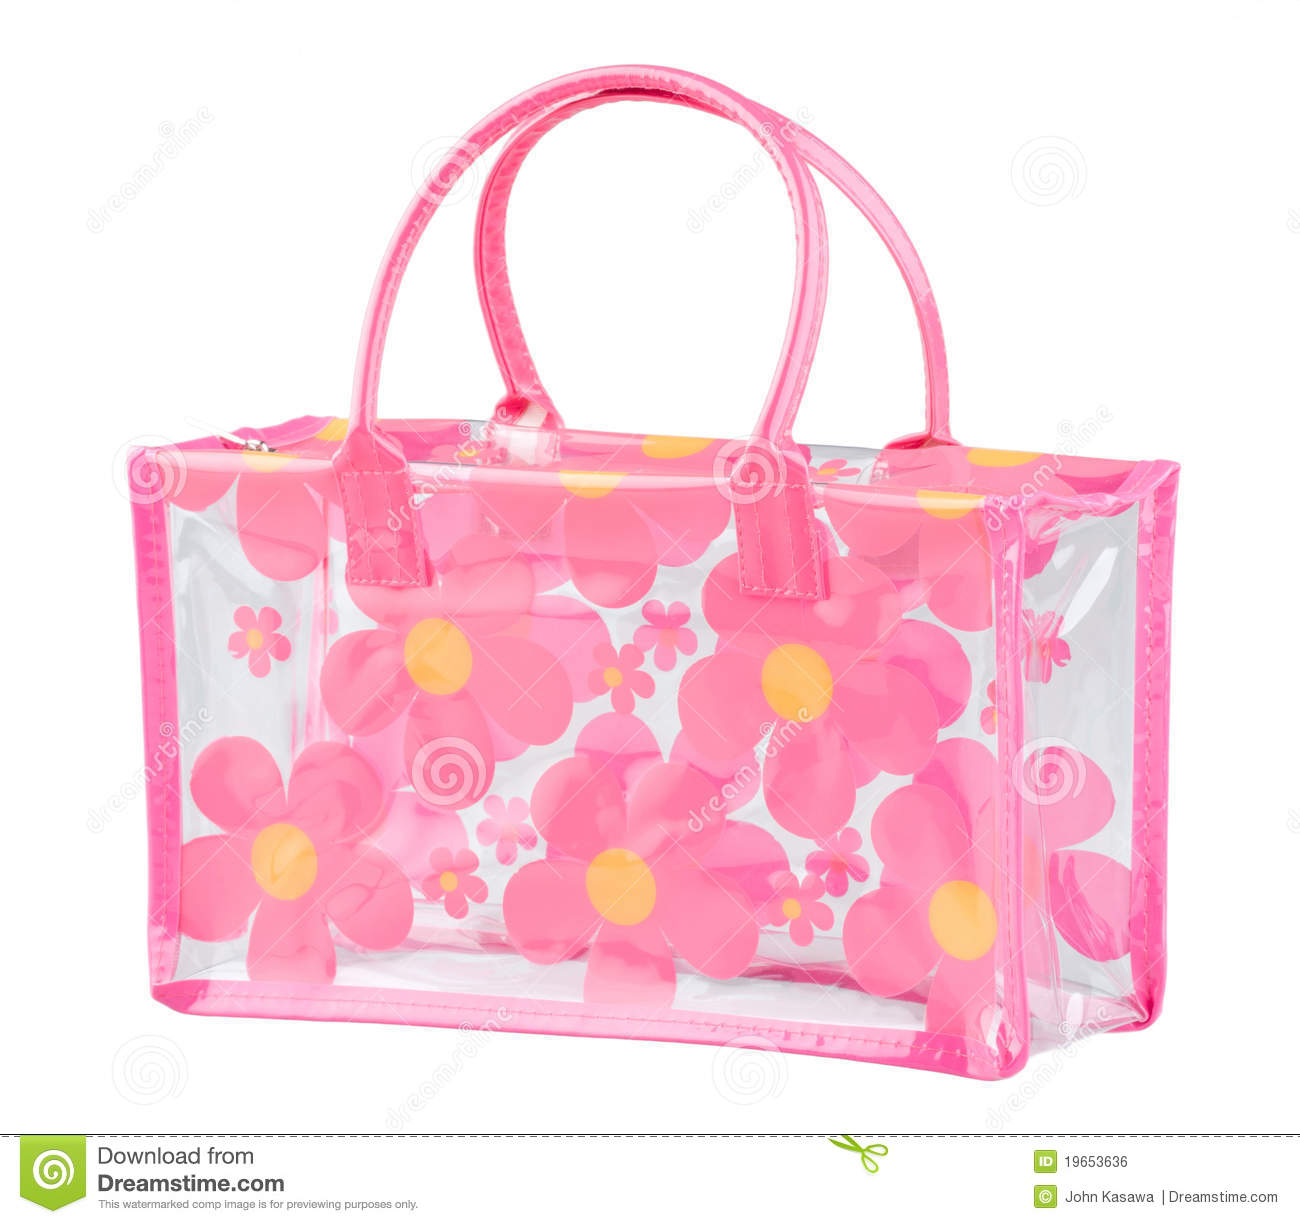 Clear Flower Pattern Plastic Bag Isolated Royalty Free Stock Image - Image: 19653636